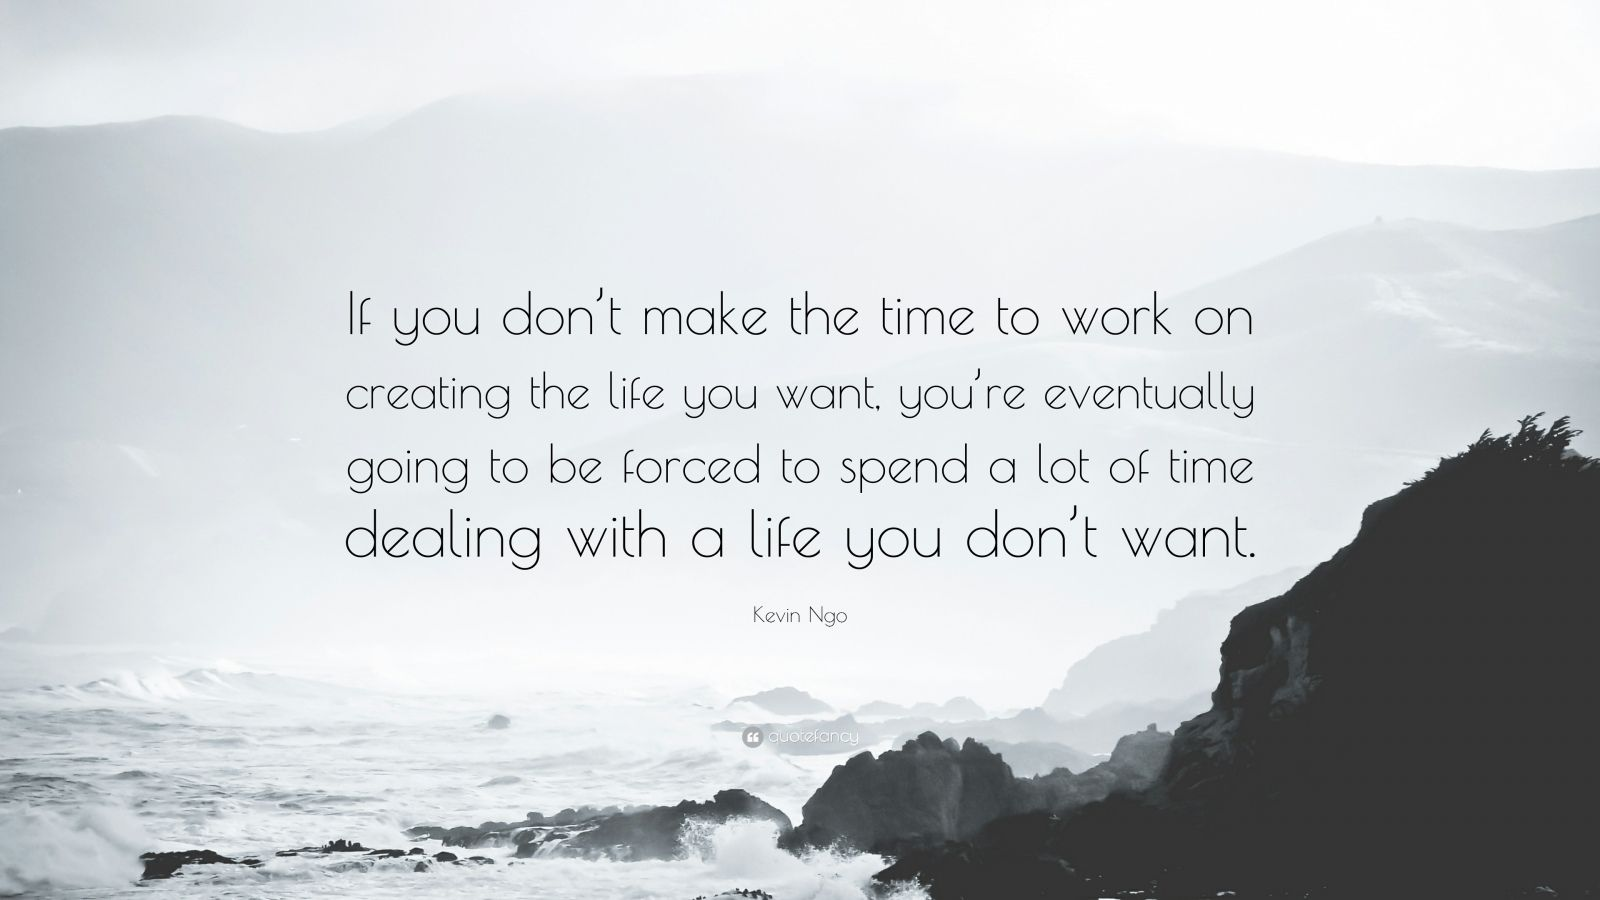 """Kevin Ngo Quote: """"If you don't make the time to work on creating the life you want, you're eventually going to be forced to spend a lot of time dealing with a life you don't want."""""""